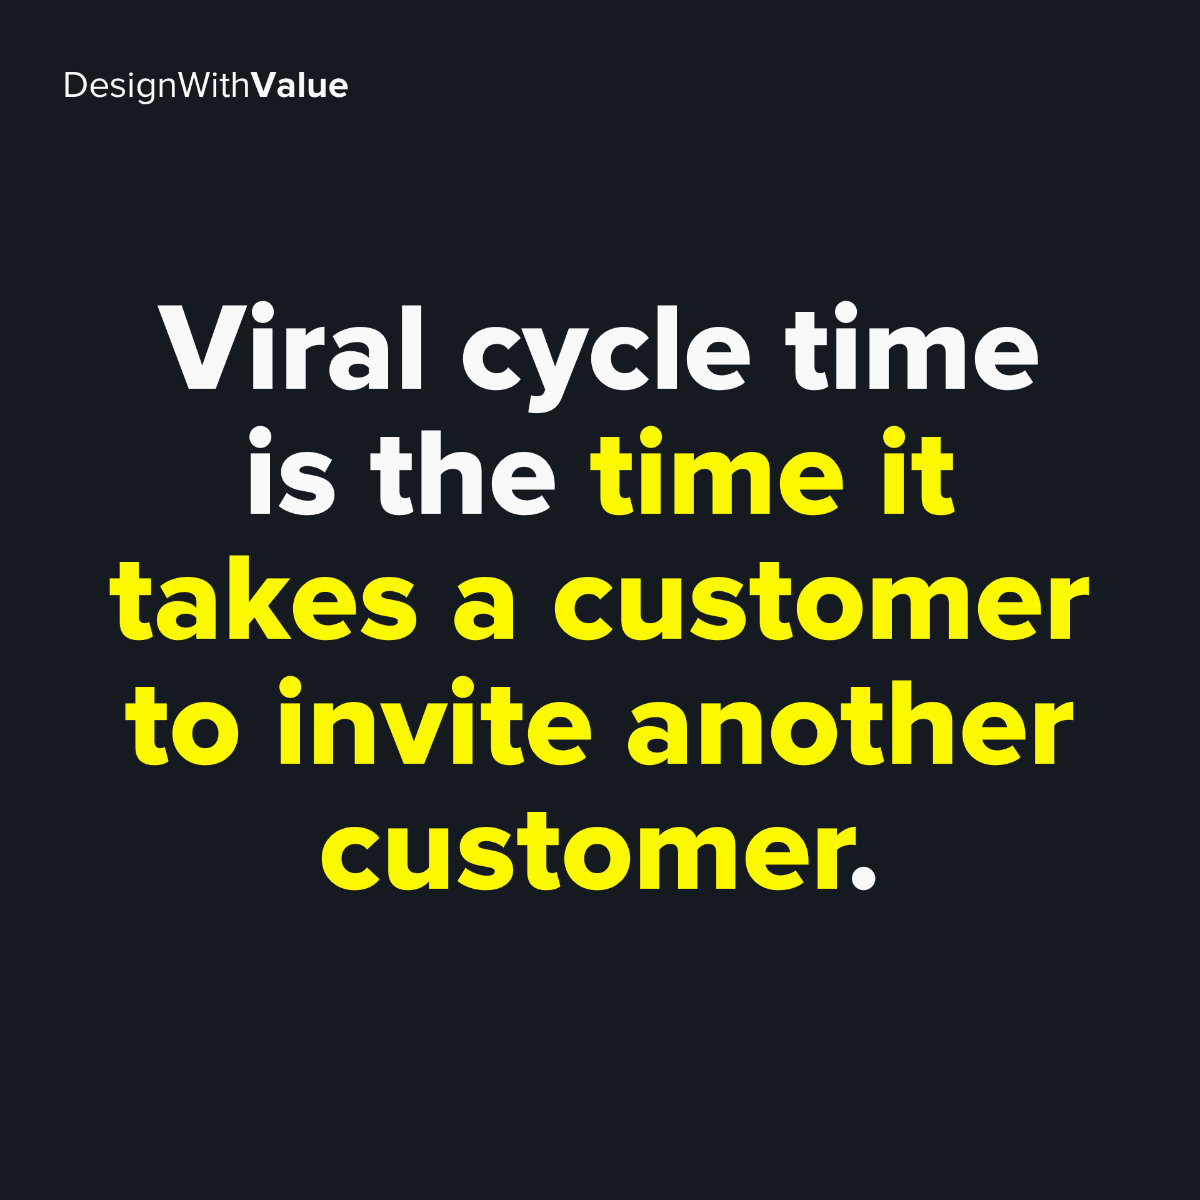 Viral cycle time is the time it takes a customer to invite another customer